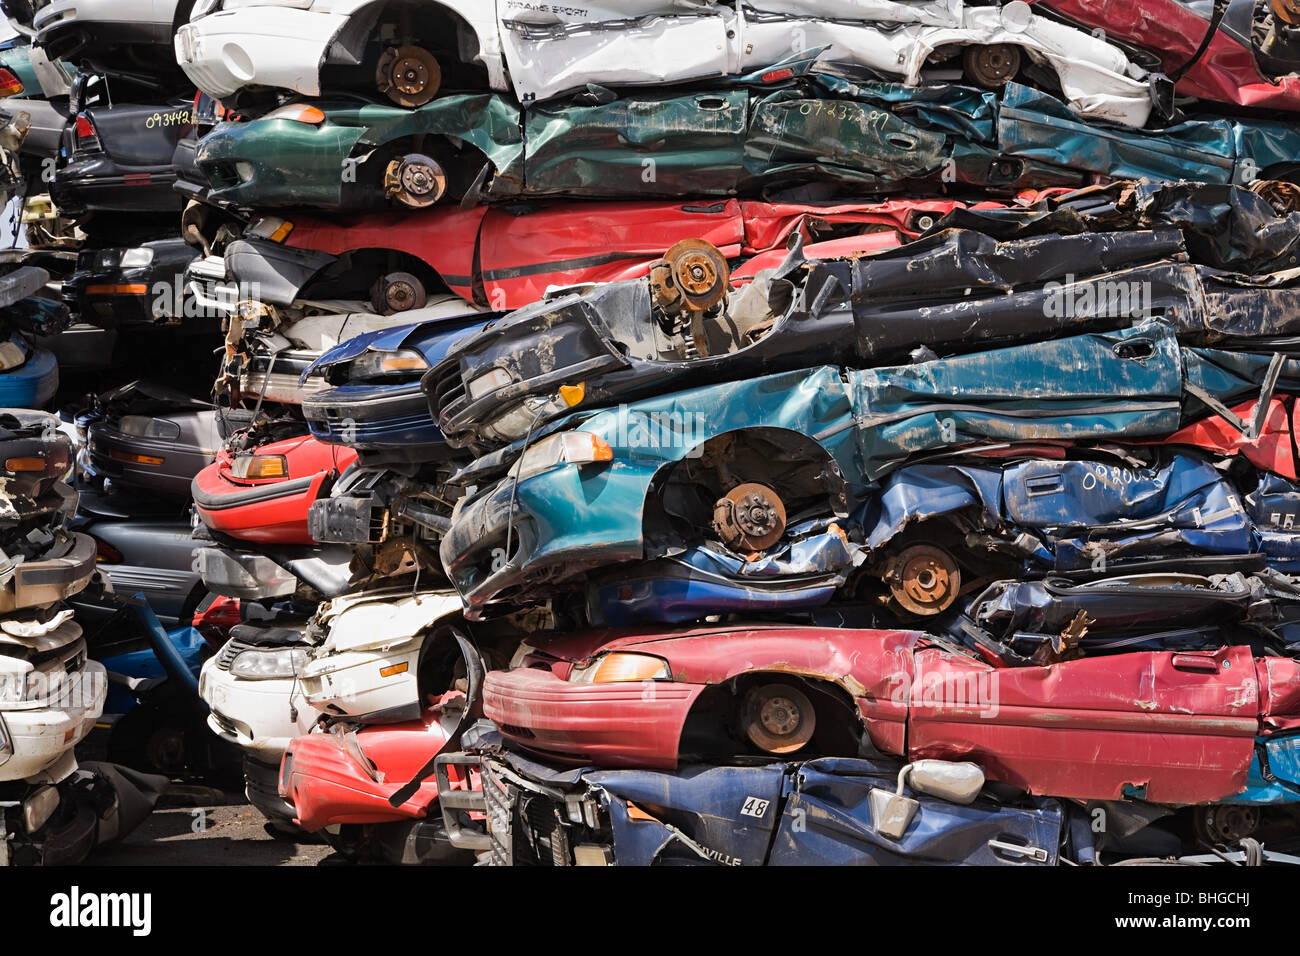 Lots Of Cars Stock Photos Lots Of Cars Stock Images Alamy